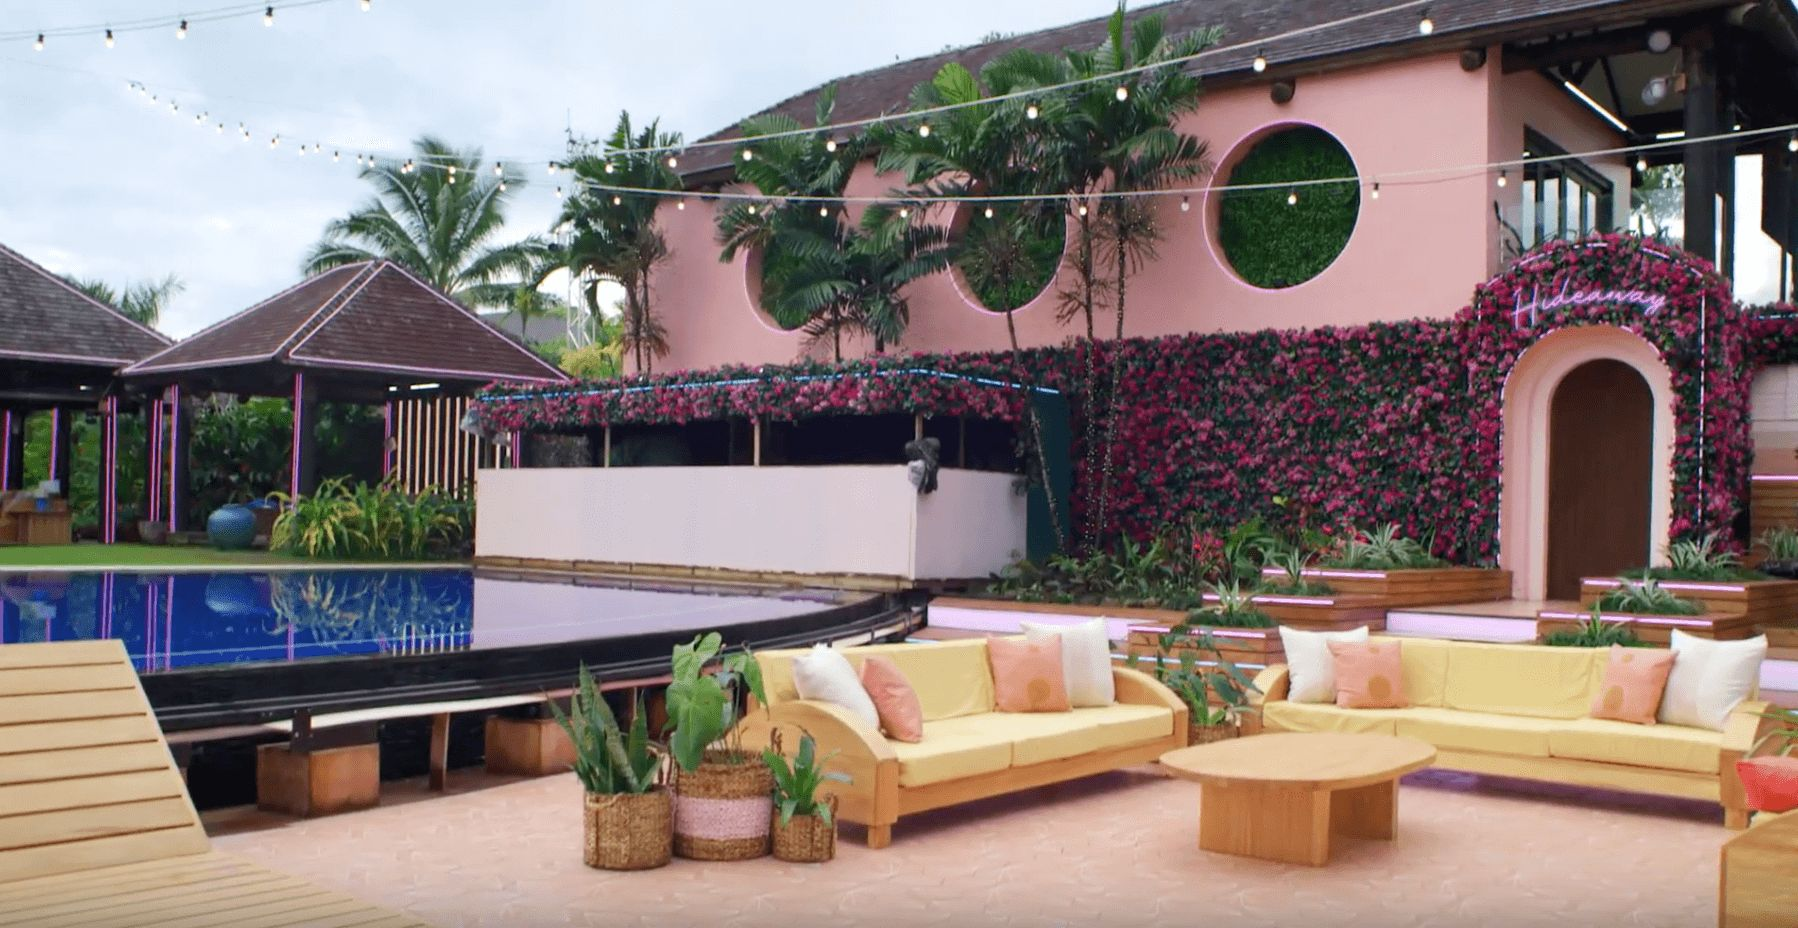 Image may contain: Love Island USA villa, Love Island USA, villa, Love Island, CBS, outside, decking, seating, lounge, palm trees, Fiji, Hideaway, Room, Patio, Indoors, Building, Hotel, Plant, Table, Furniture, Couch